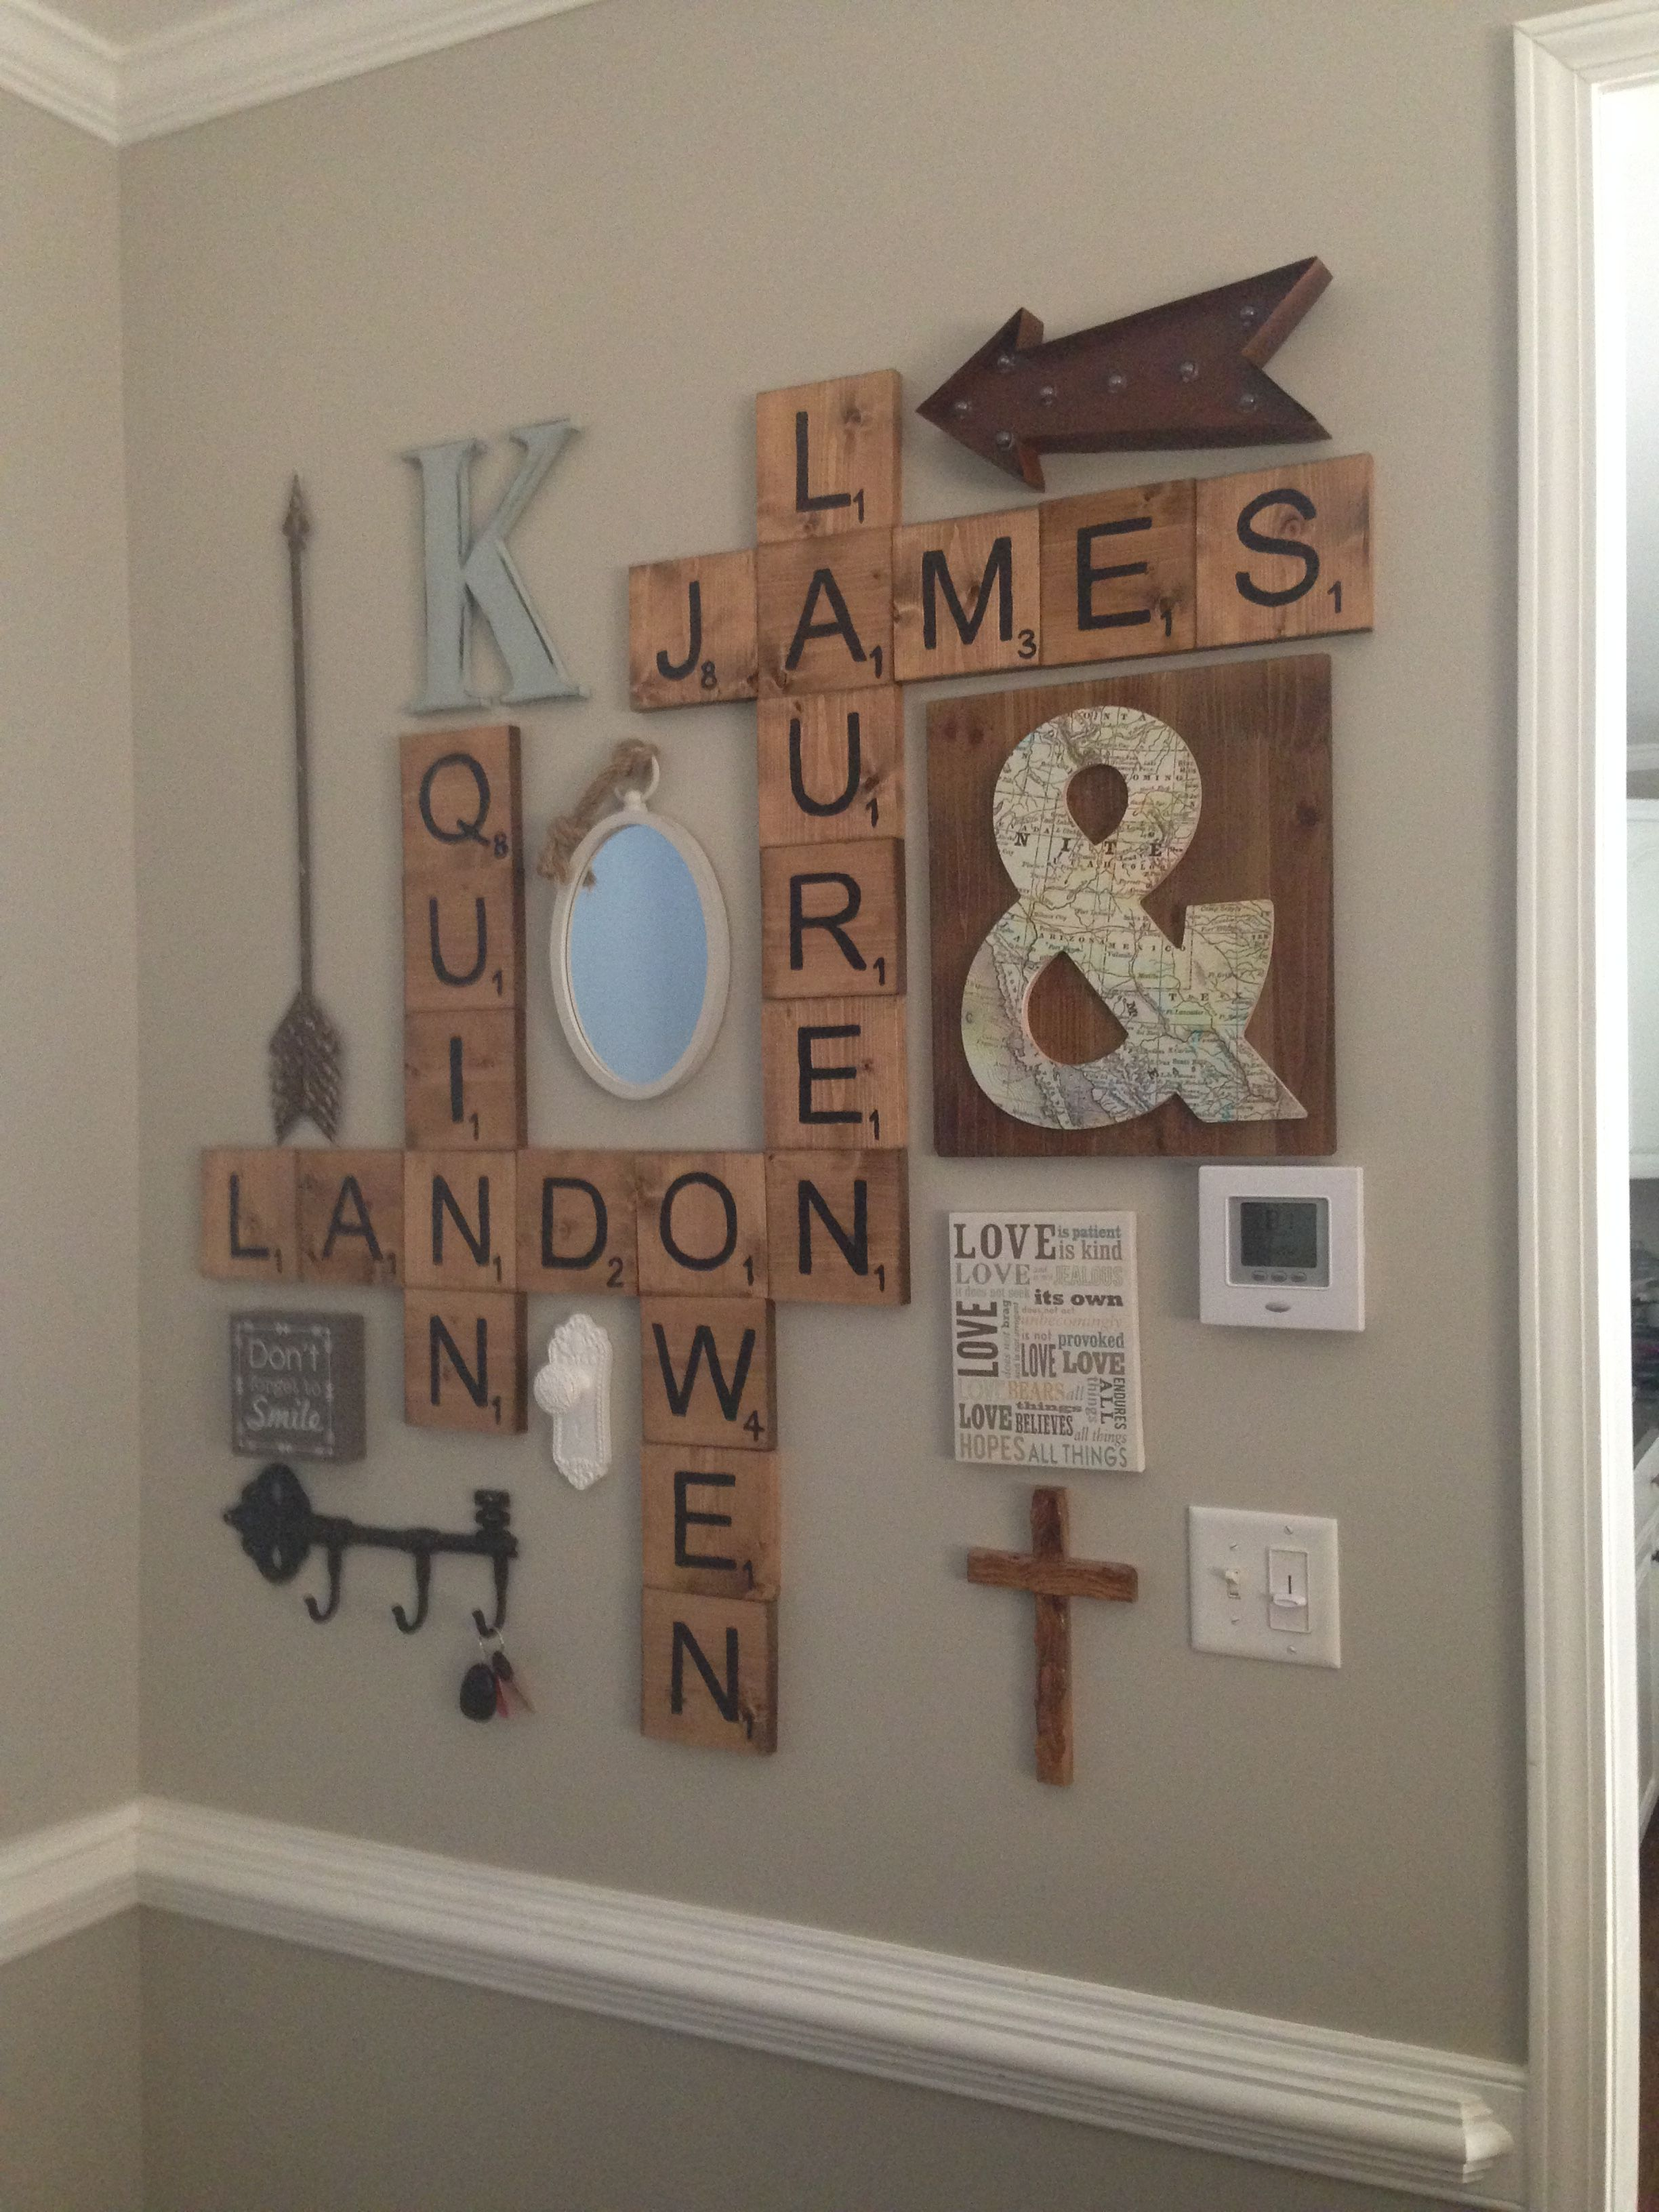 scrabble letters wall decor diy pinterest flure wanddeko und wanddeko ideen. Black Bedroom Furniture Sets. Home Design Ideas